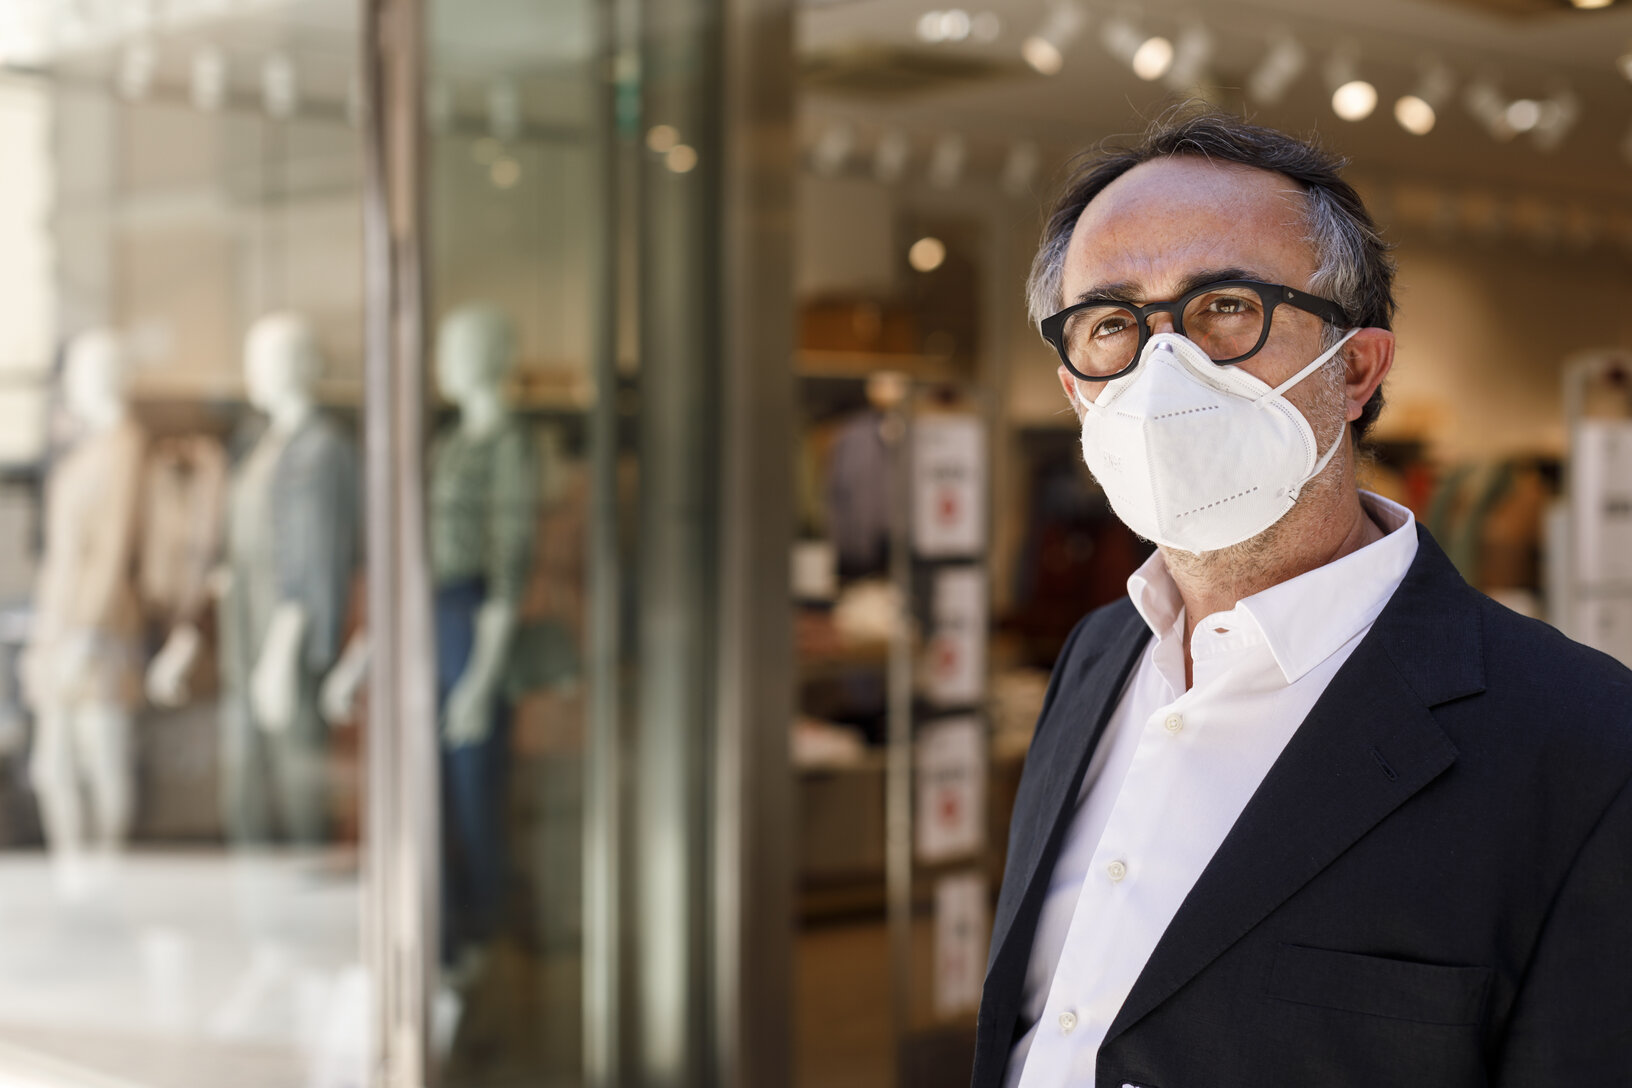 Man in suit and facemask standing outside a storefront